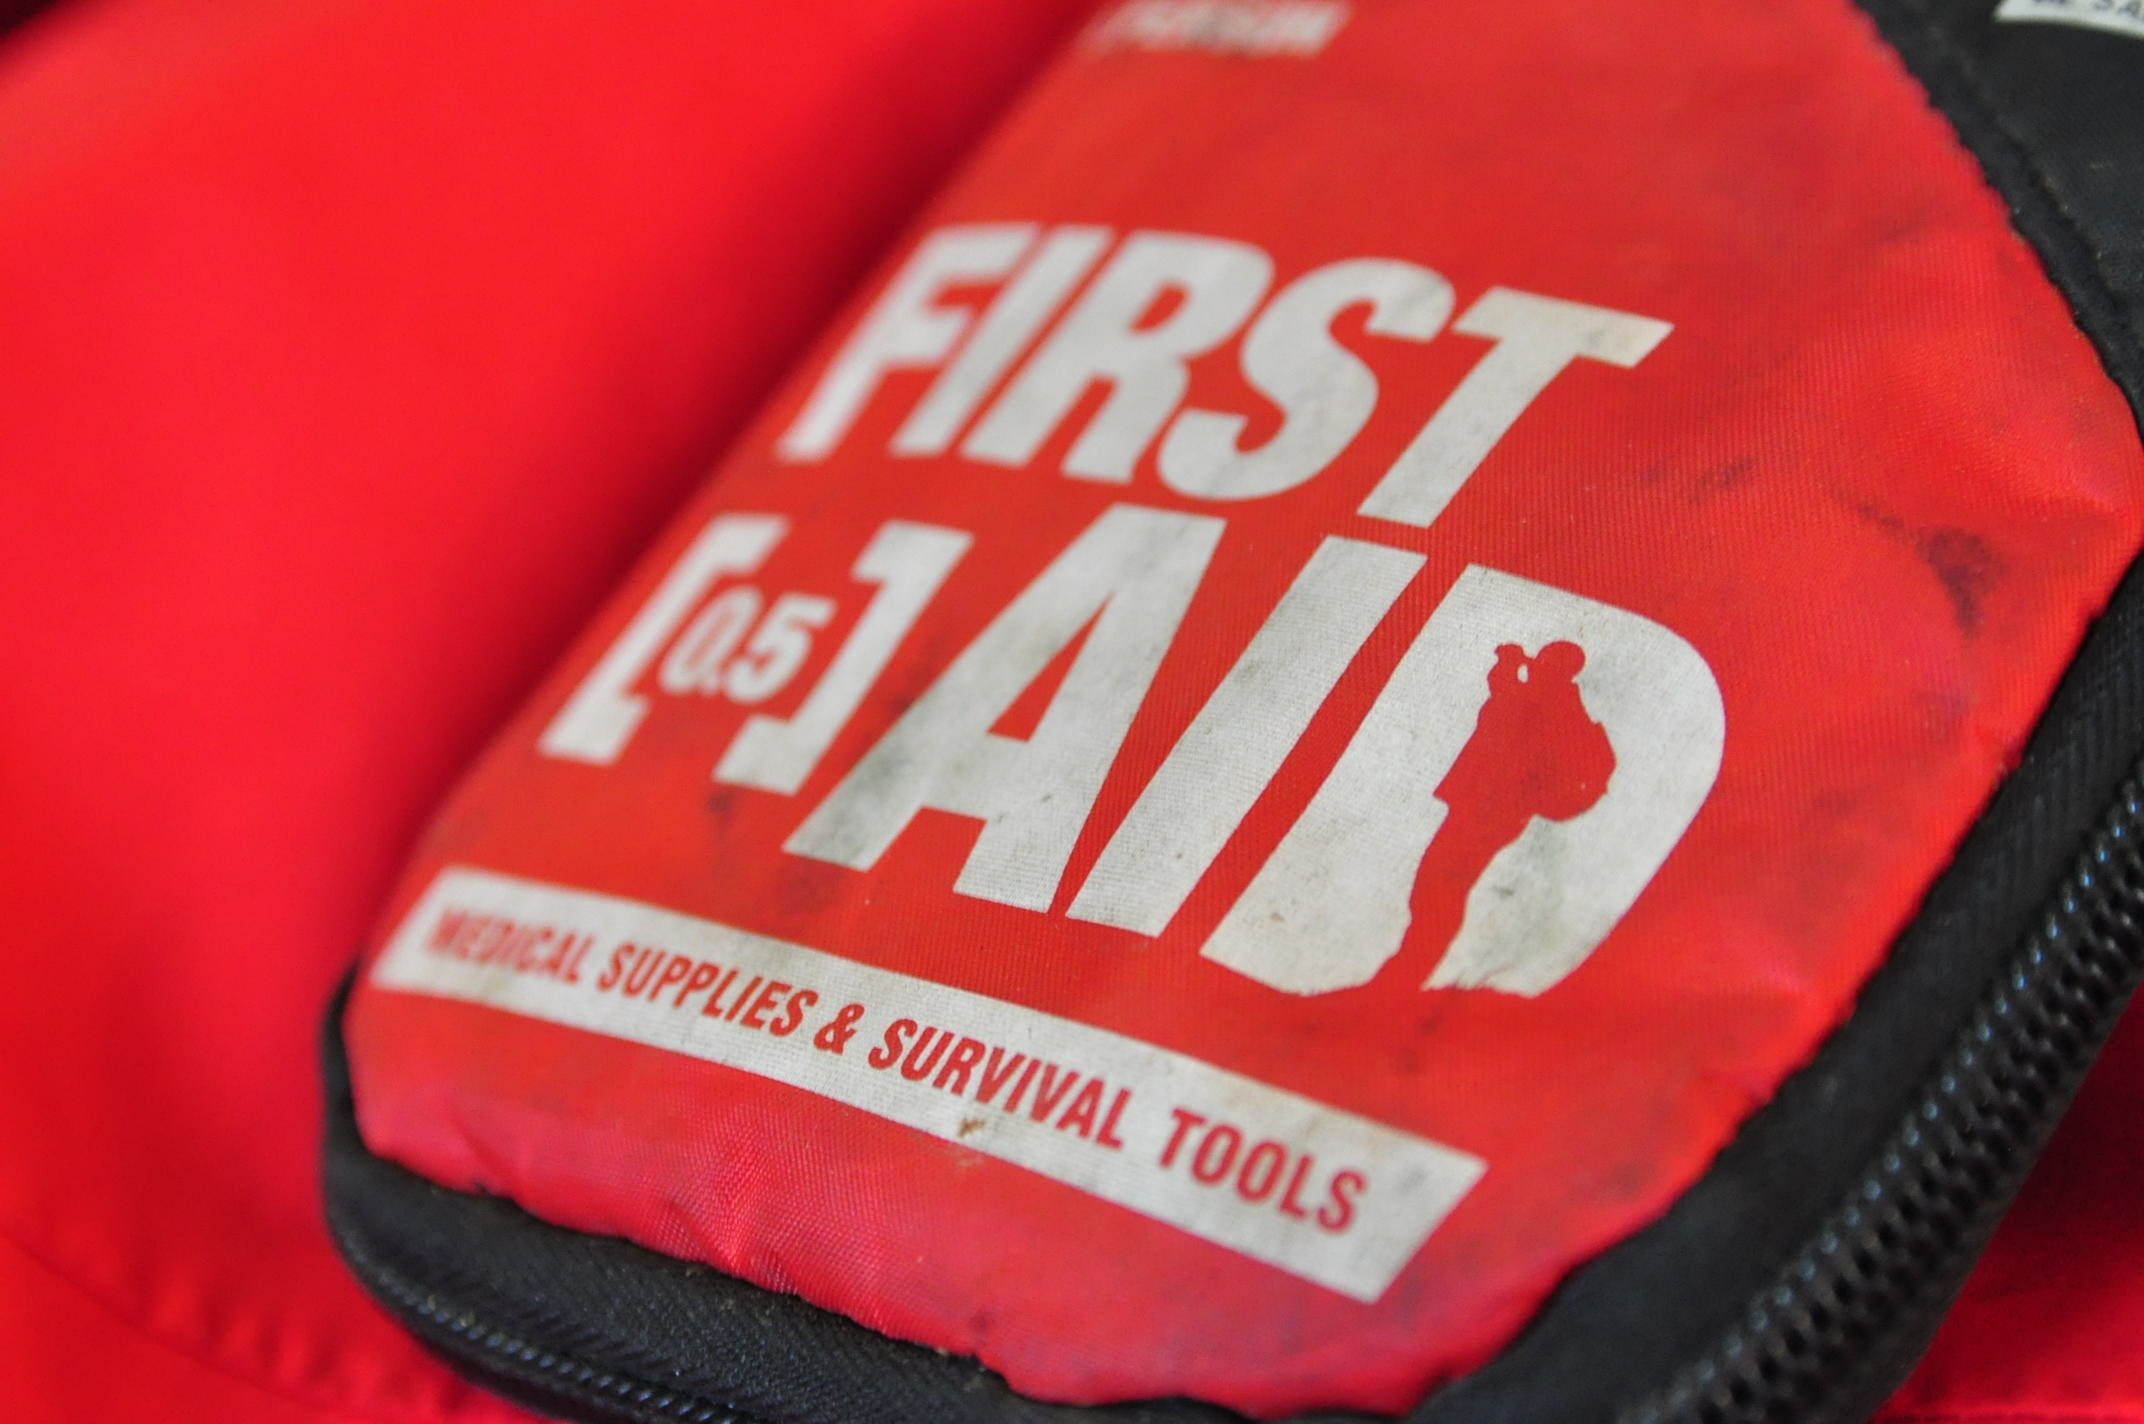 A small first aid kit for on the go